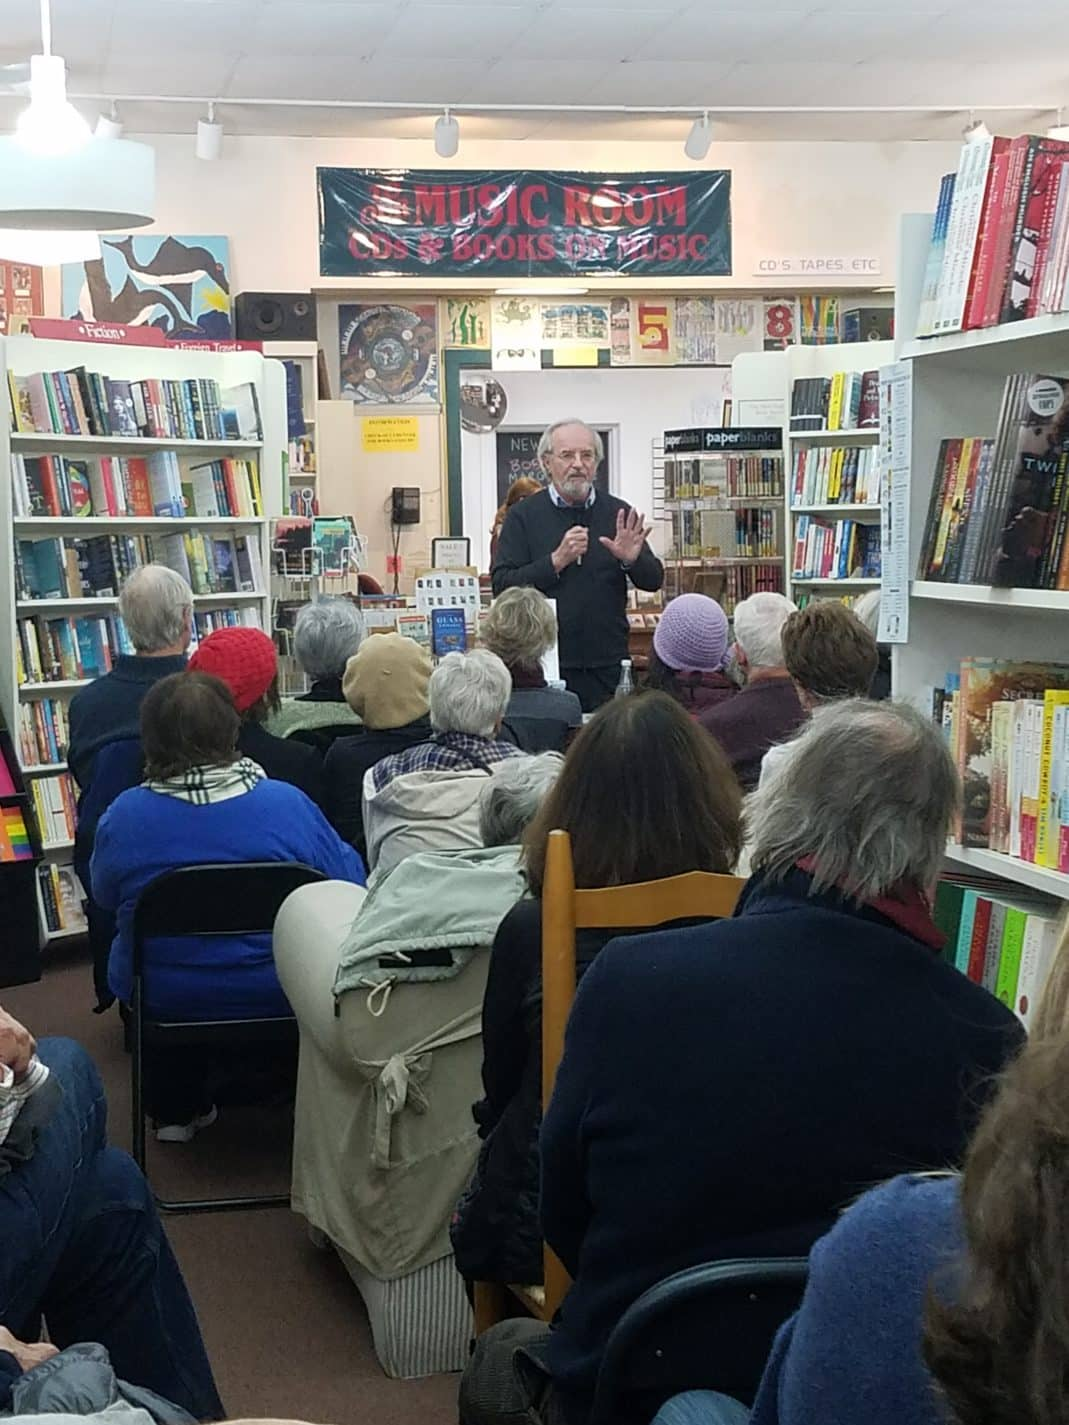 An author gives a reading at the bookstore in front of several guests. bookcases surround them